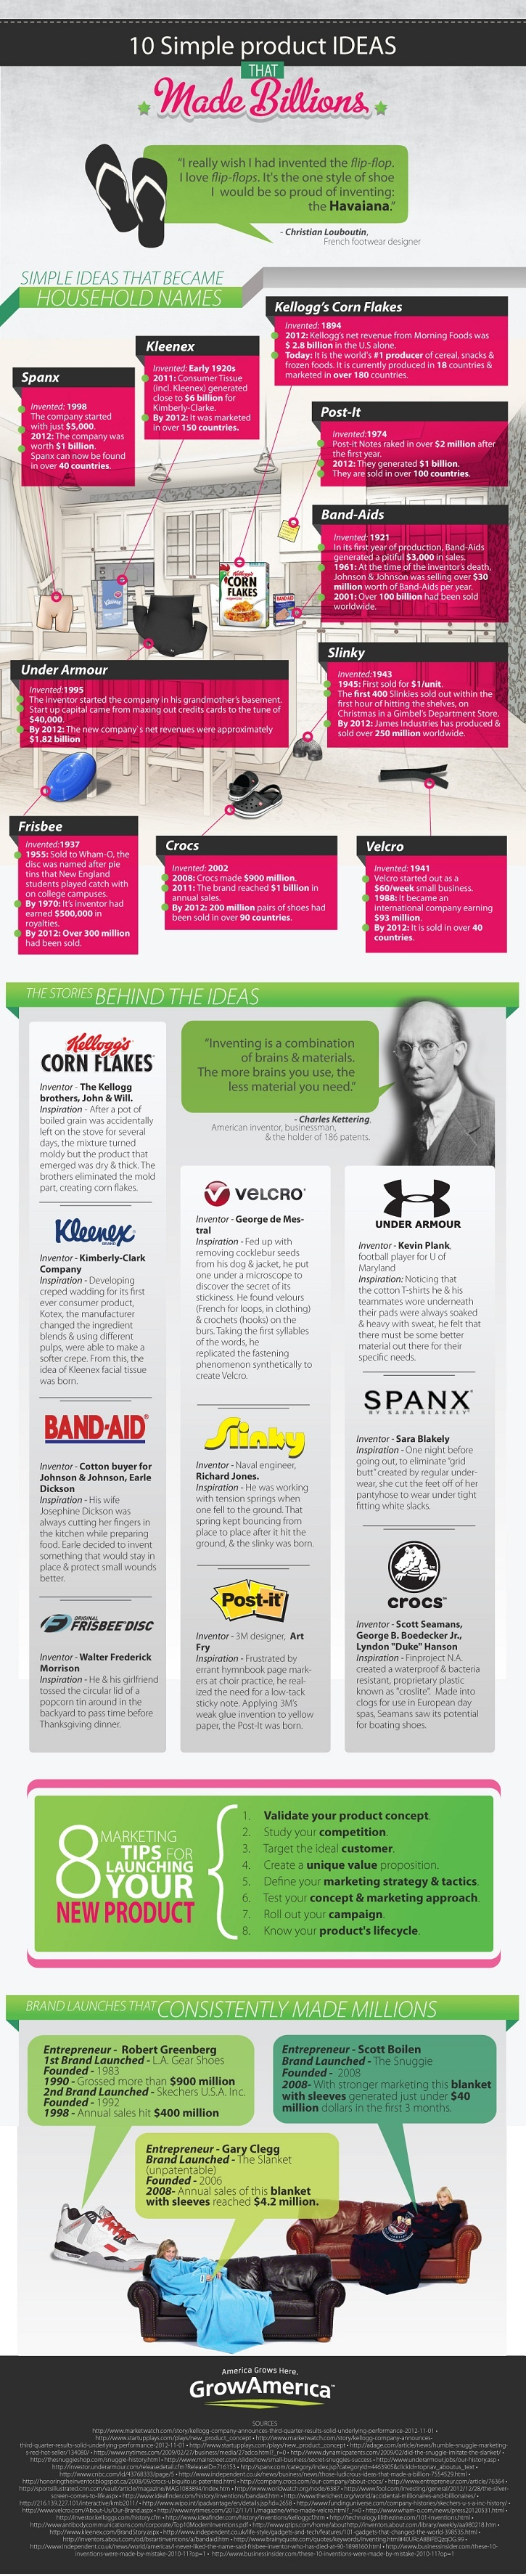 10 simple ideas that made billions.